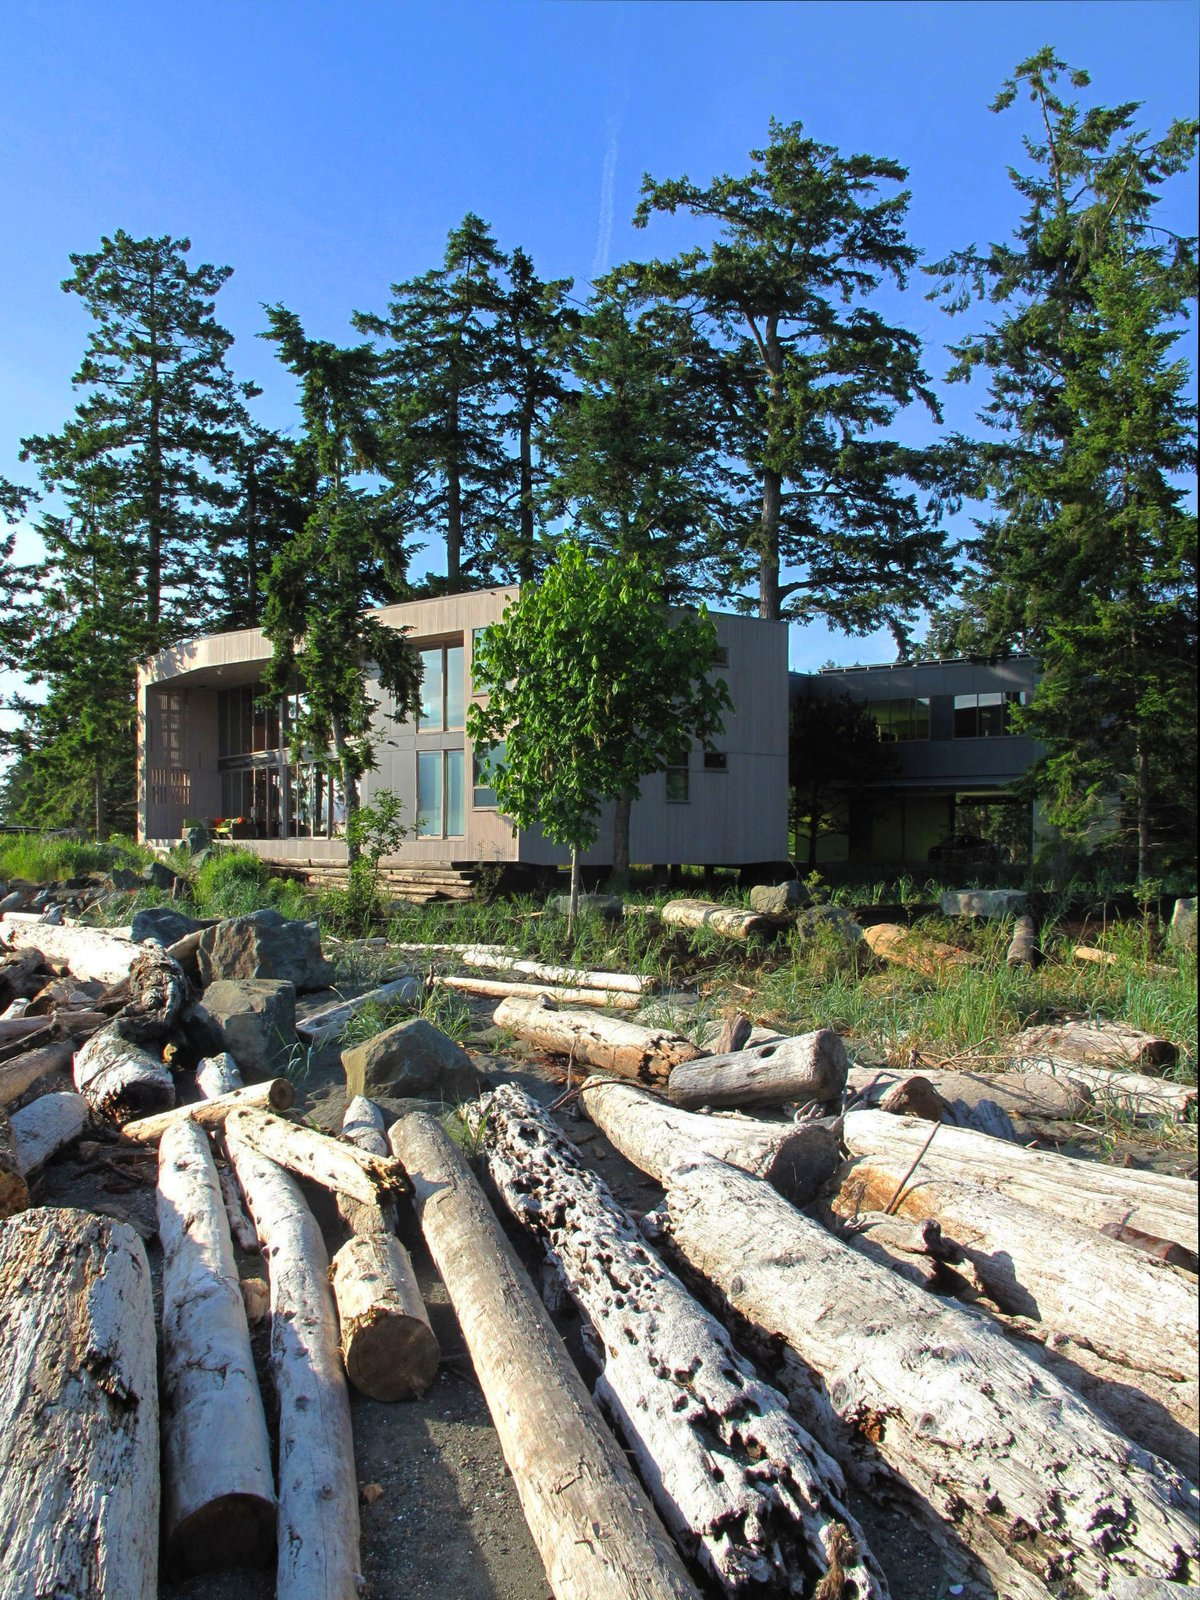 The house is designed to weather to a silver grey – becoming a modern drift wood box piled on the beach with the ever-changing storm debris.  #beachhouse #facade #beachhouses #outside #outdoors #landscape #interstice #intersticearchitects #britishcolumbia #saratoga #vancouverisland